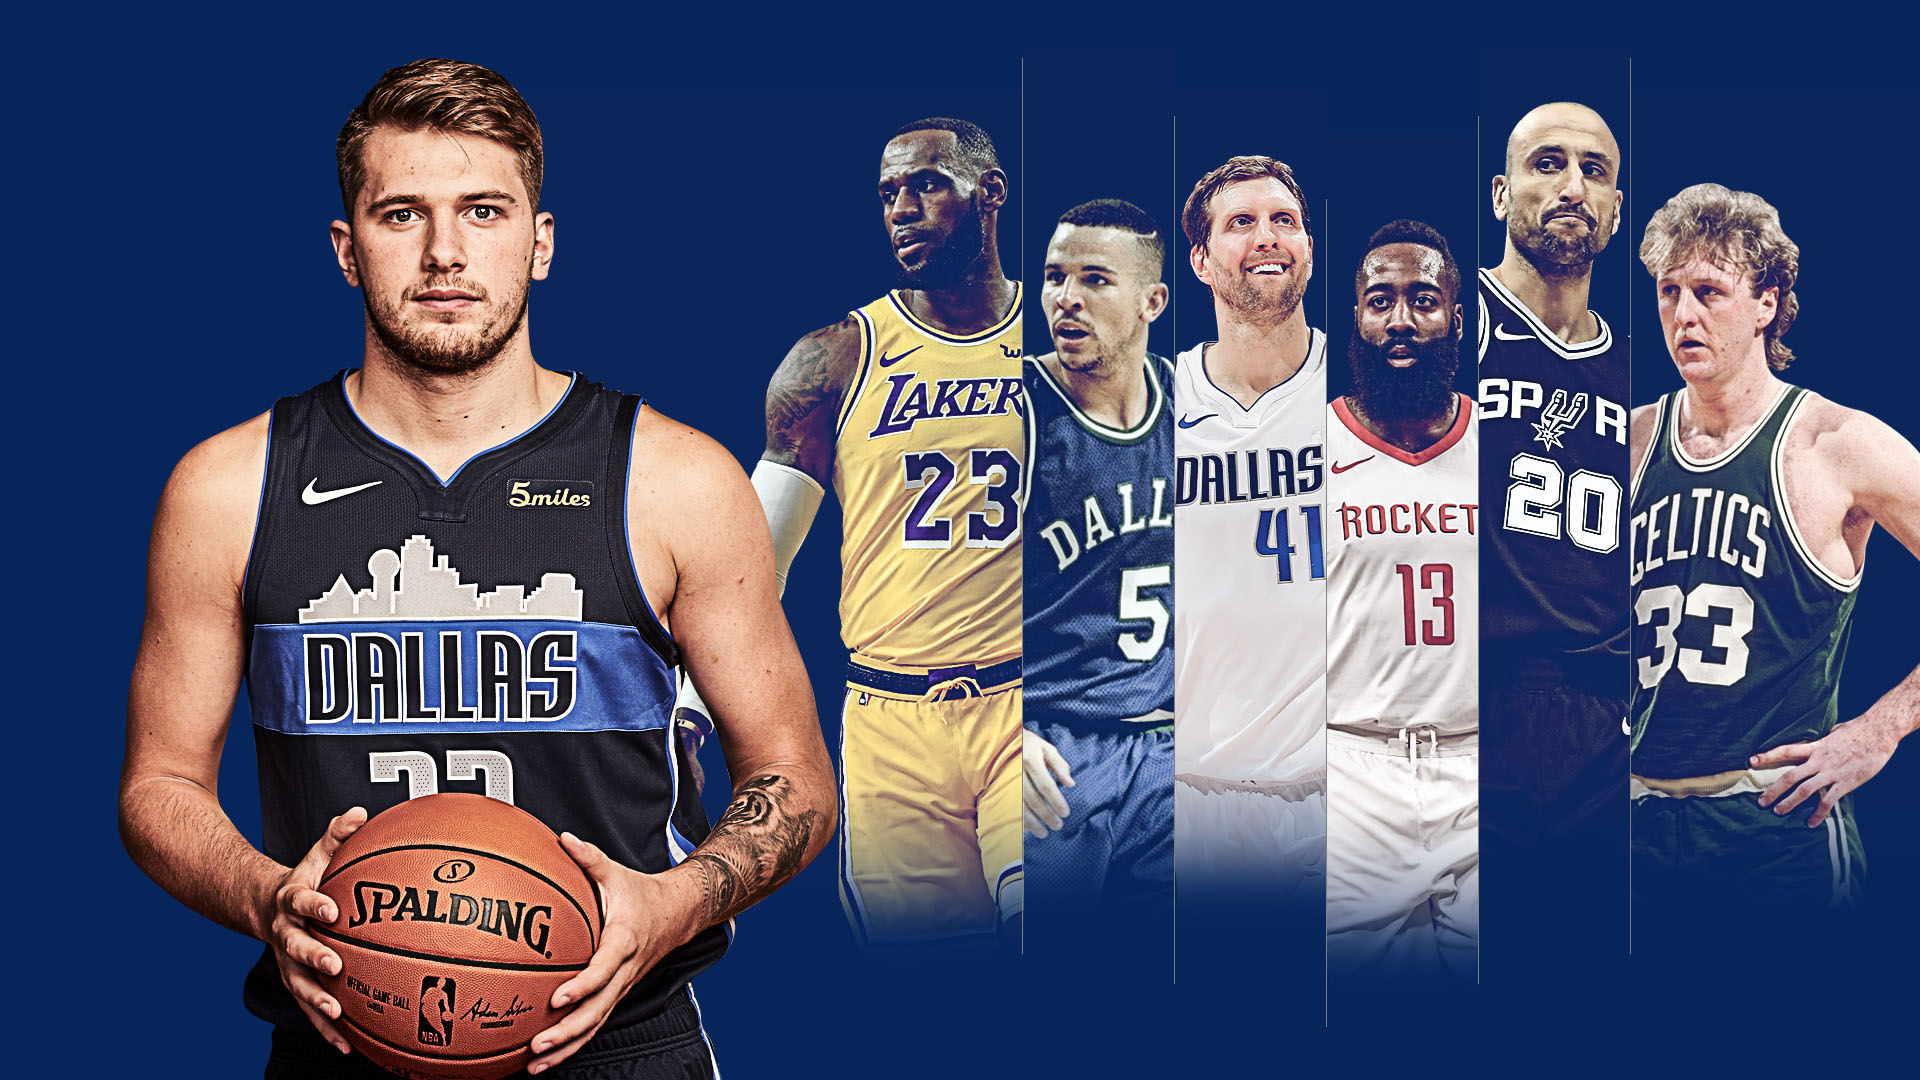 Heat Check: What is the ceiling for Luka Doncic?   NBA.com